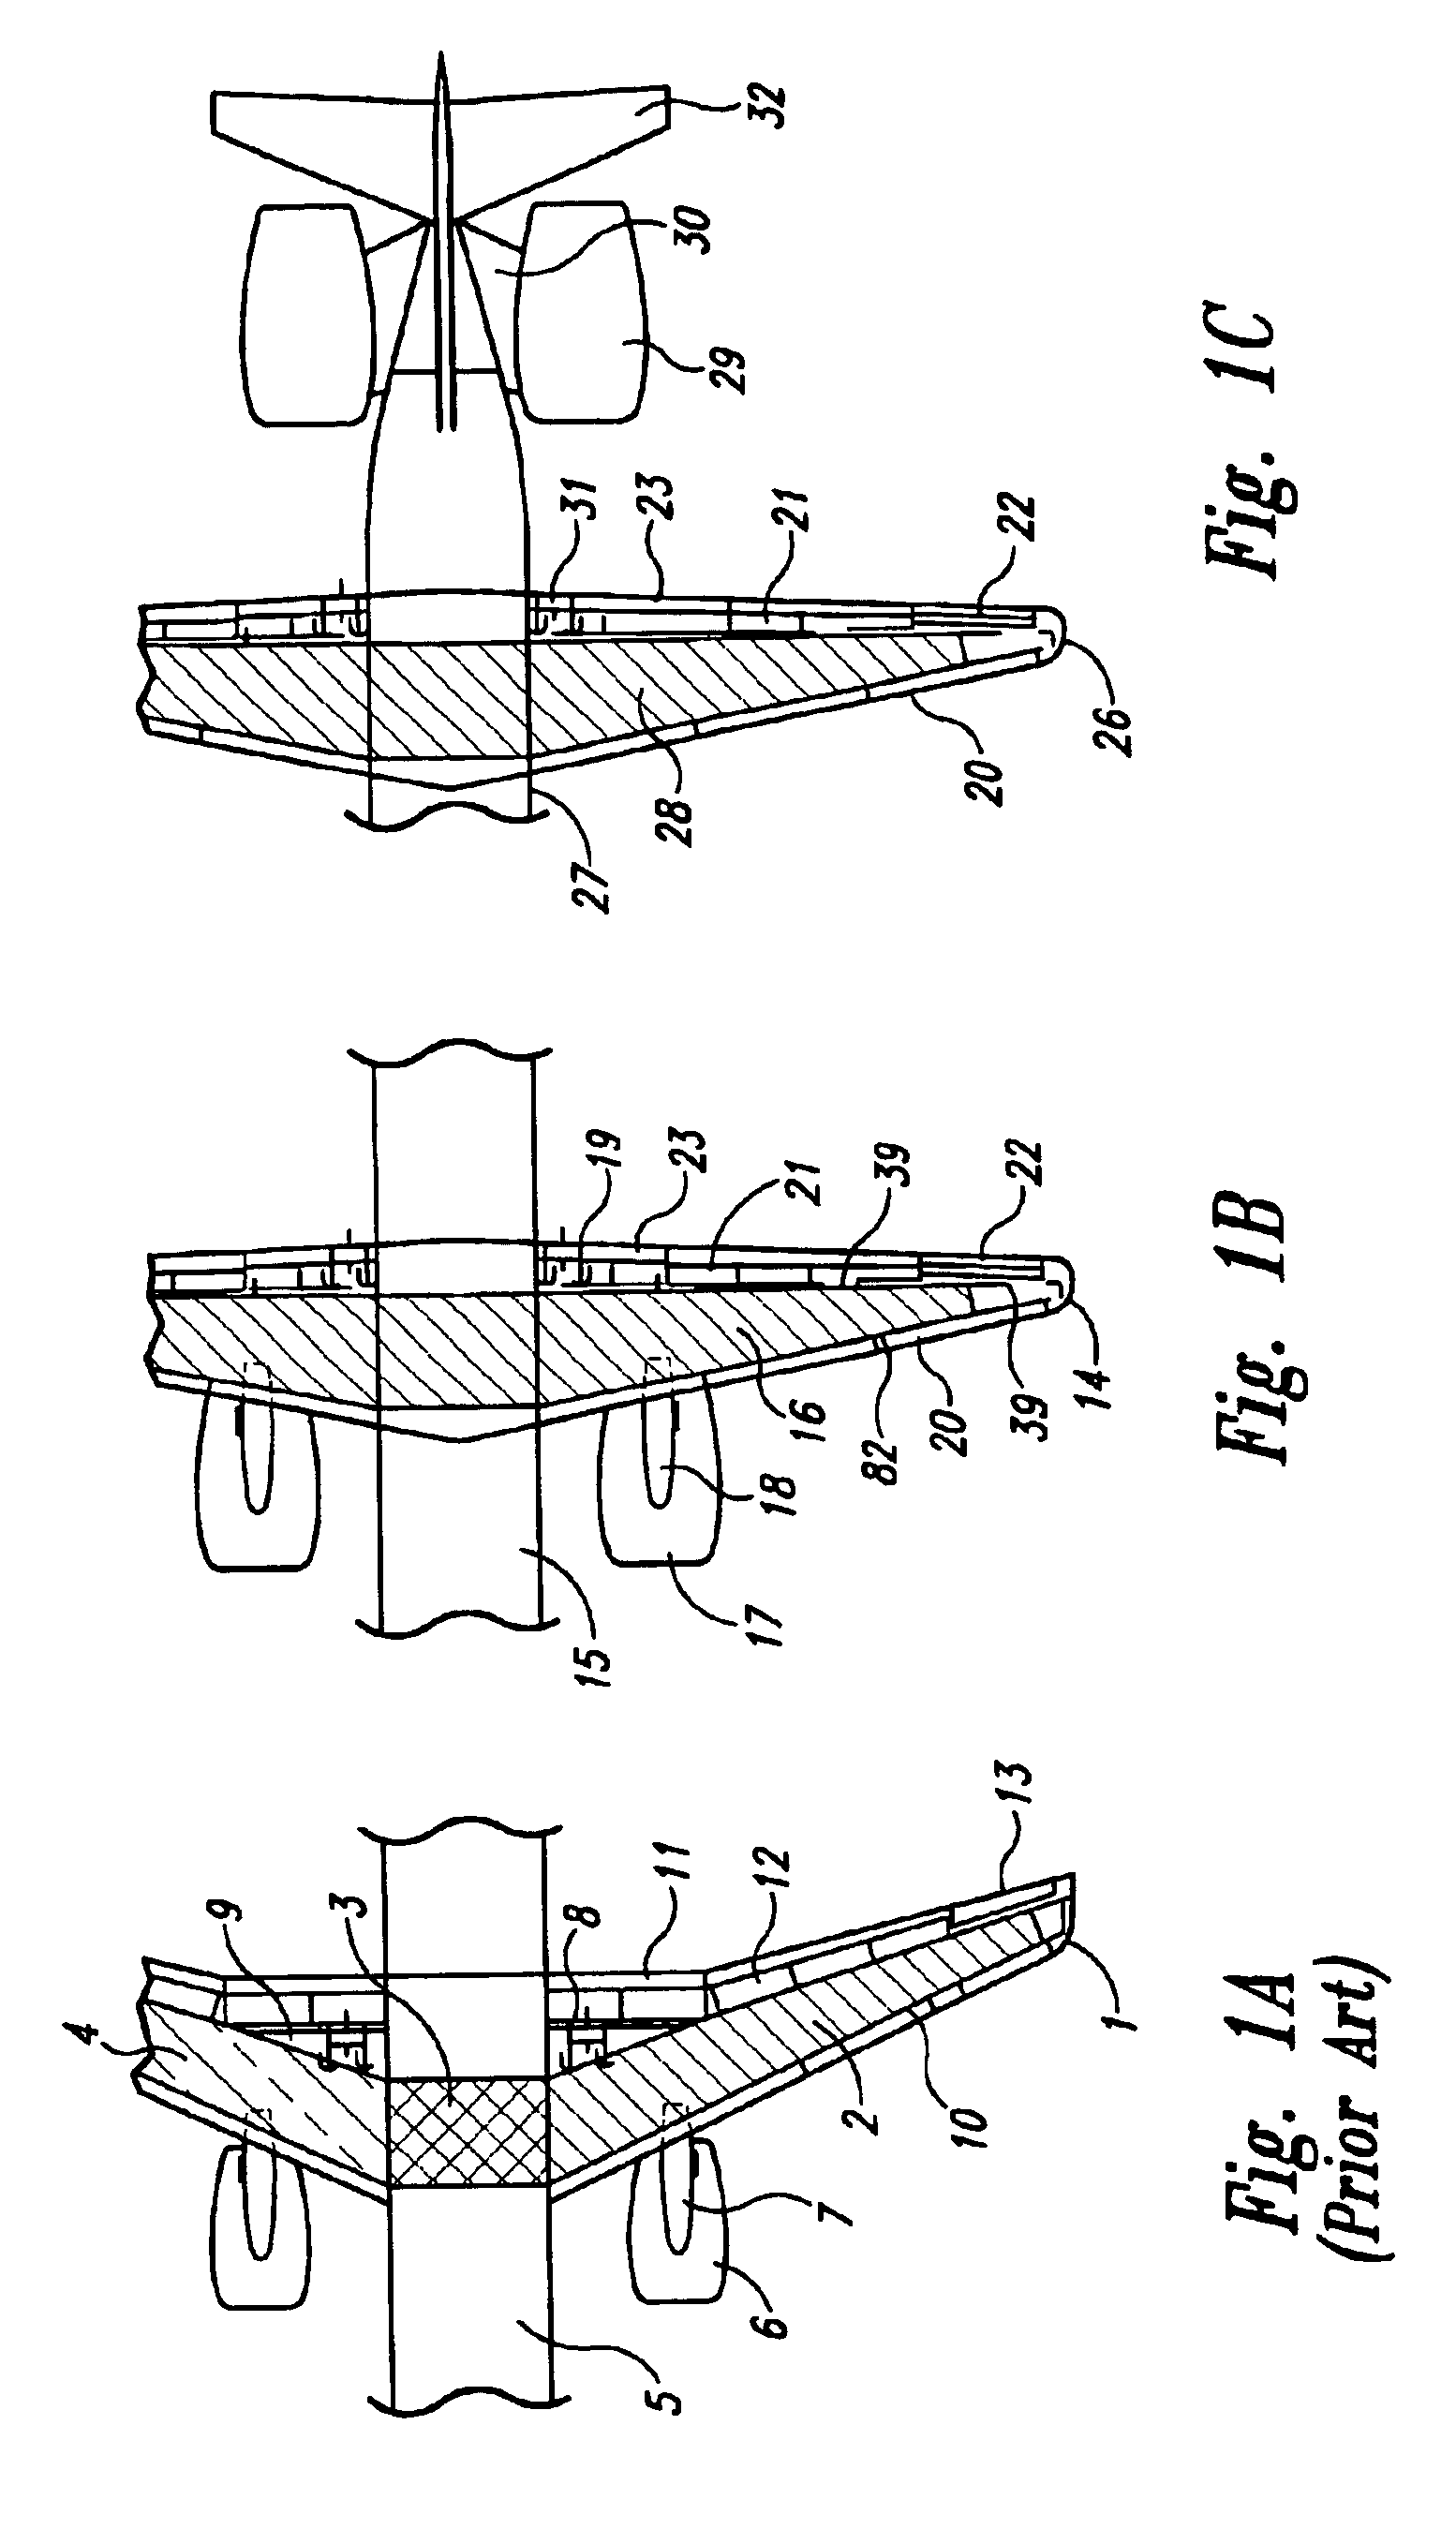 patent usre44313 - airplane with unswept slotted cruise wing airfoil